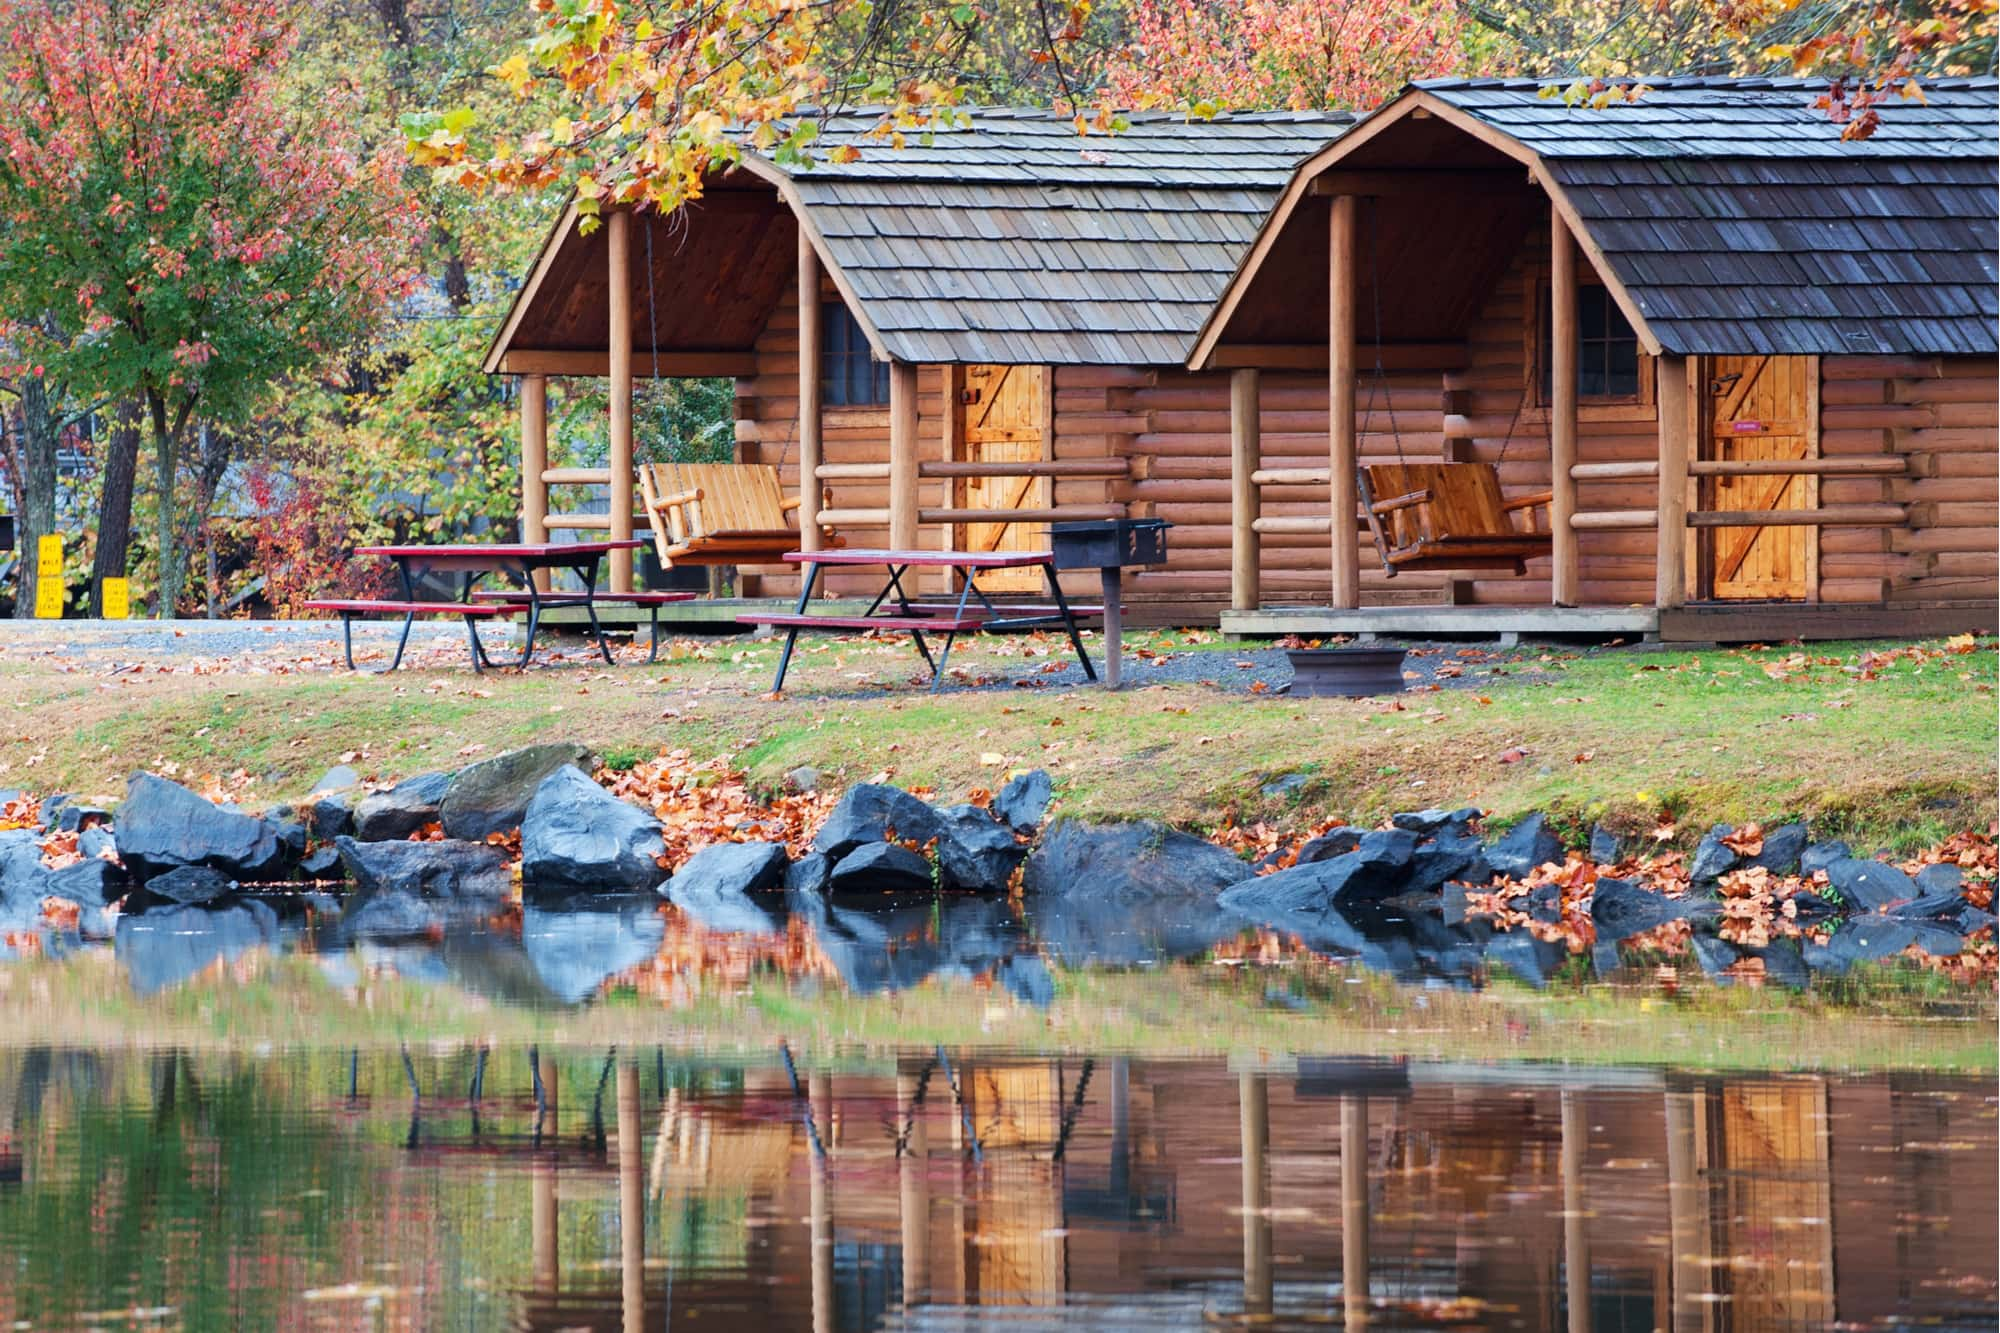 Fall colors on trees and a cabin reflecting in the water of a small lake in North Carolina